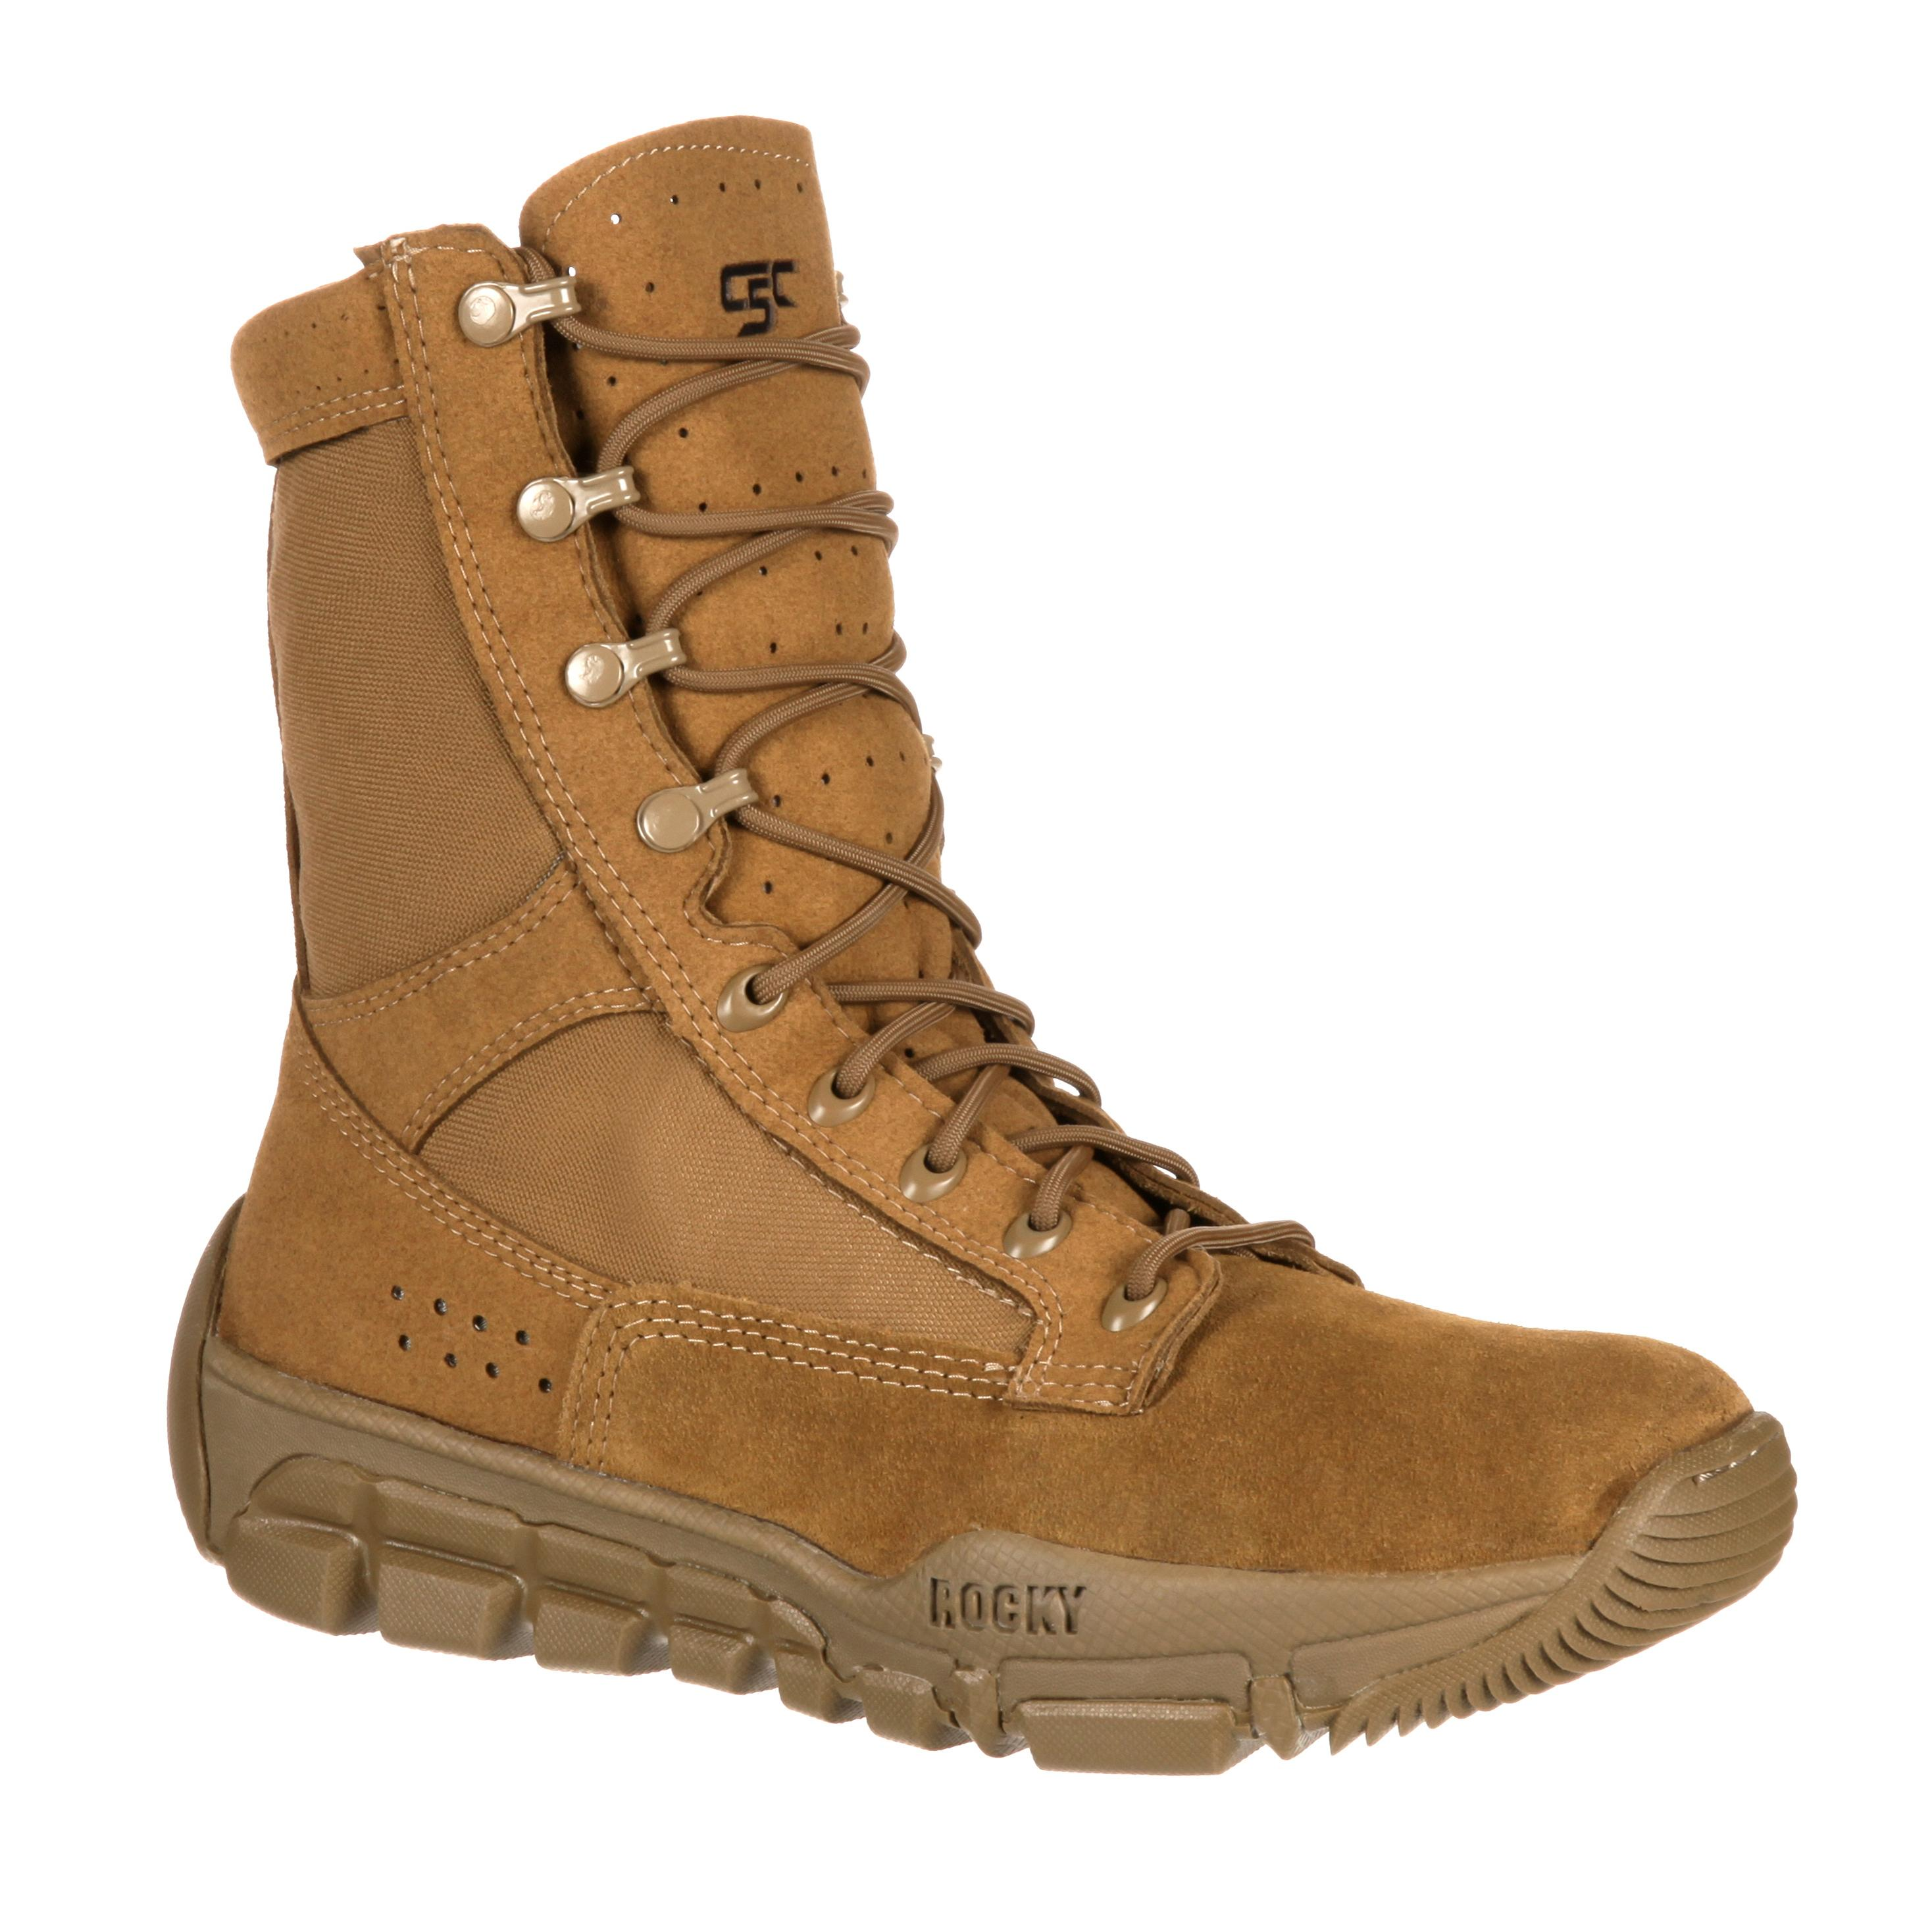 Rocky C5C Commercial Military Boot, #RKYC026